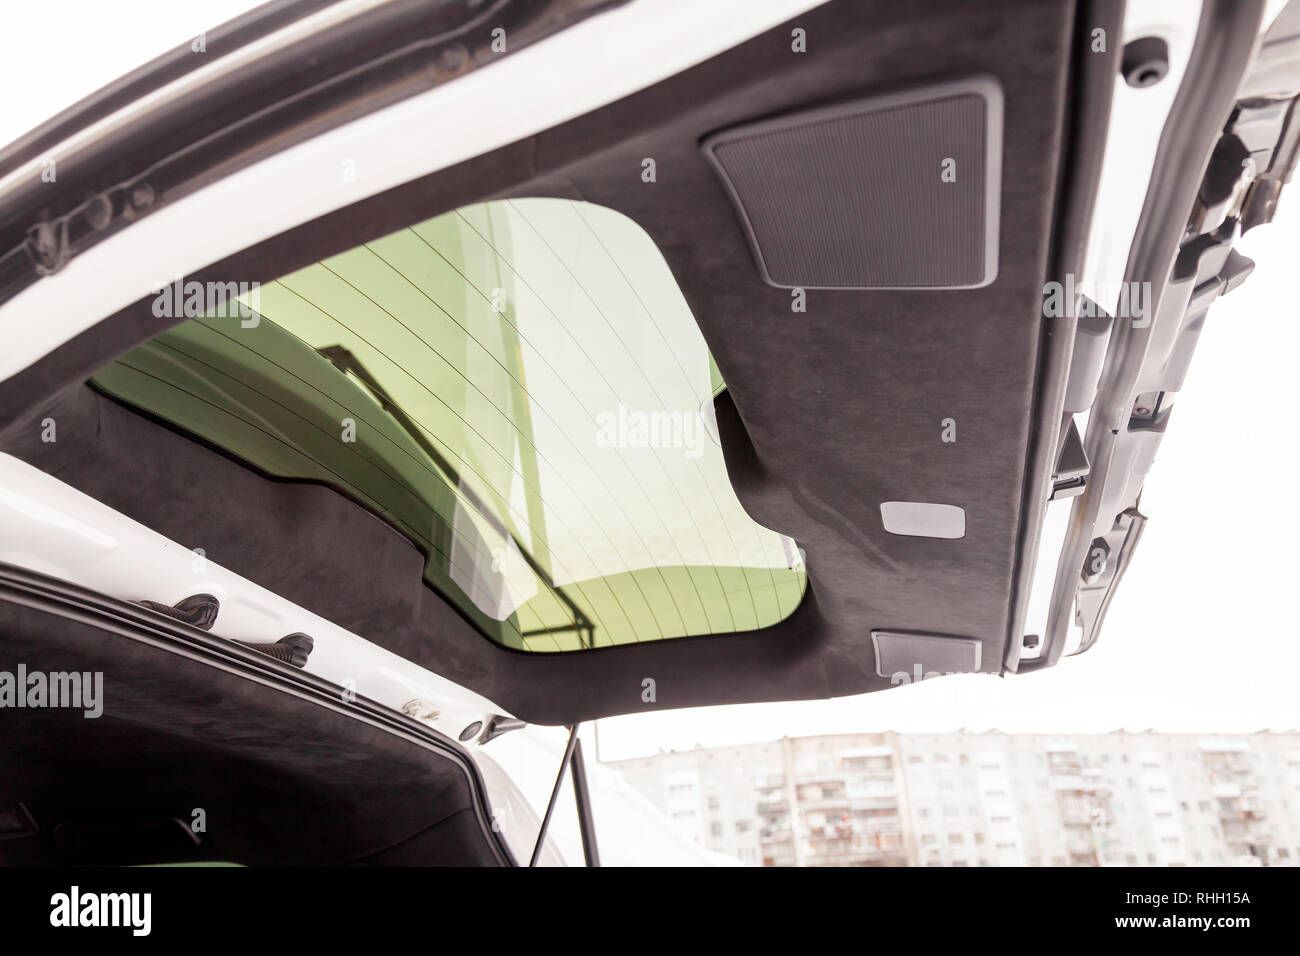 The trunk interior of the SUV car pulled by black soft material alkantara in the workshop for tuning and styling - Stock Image